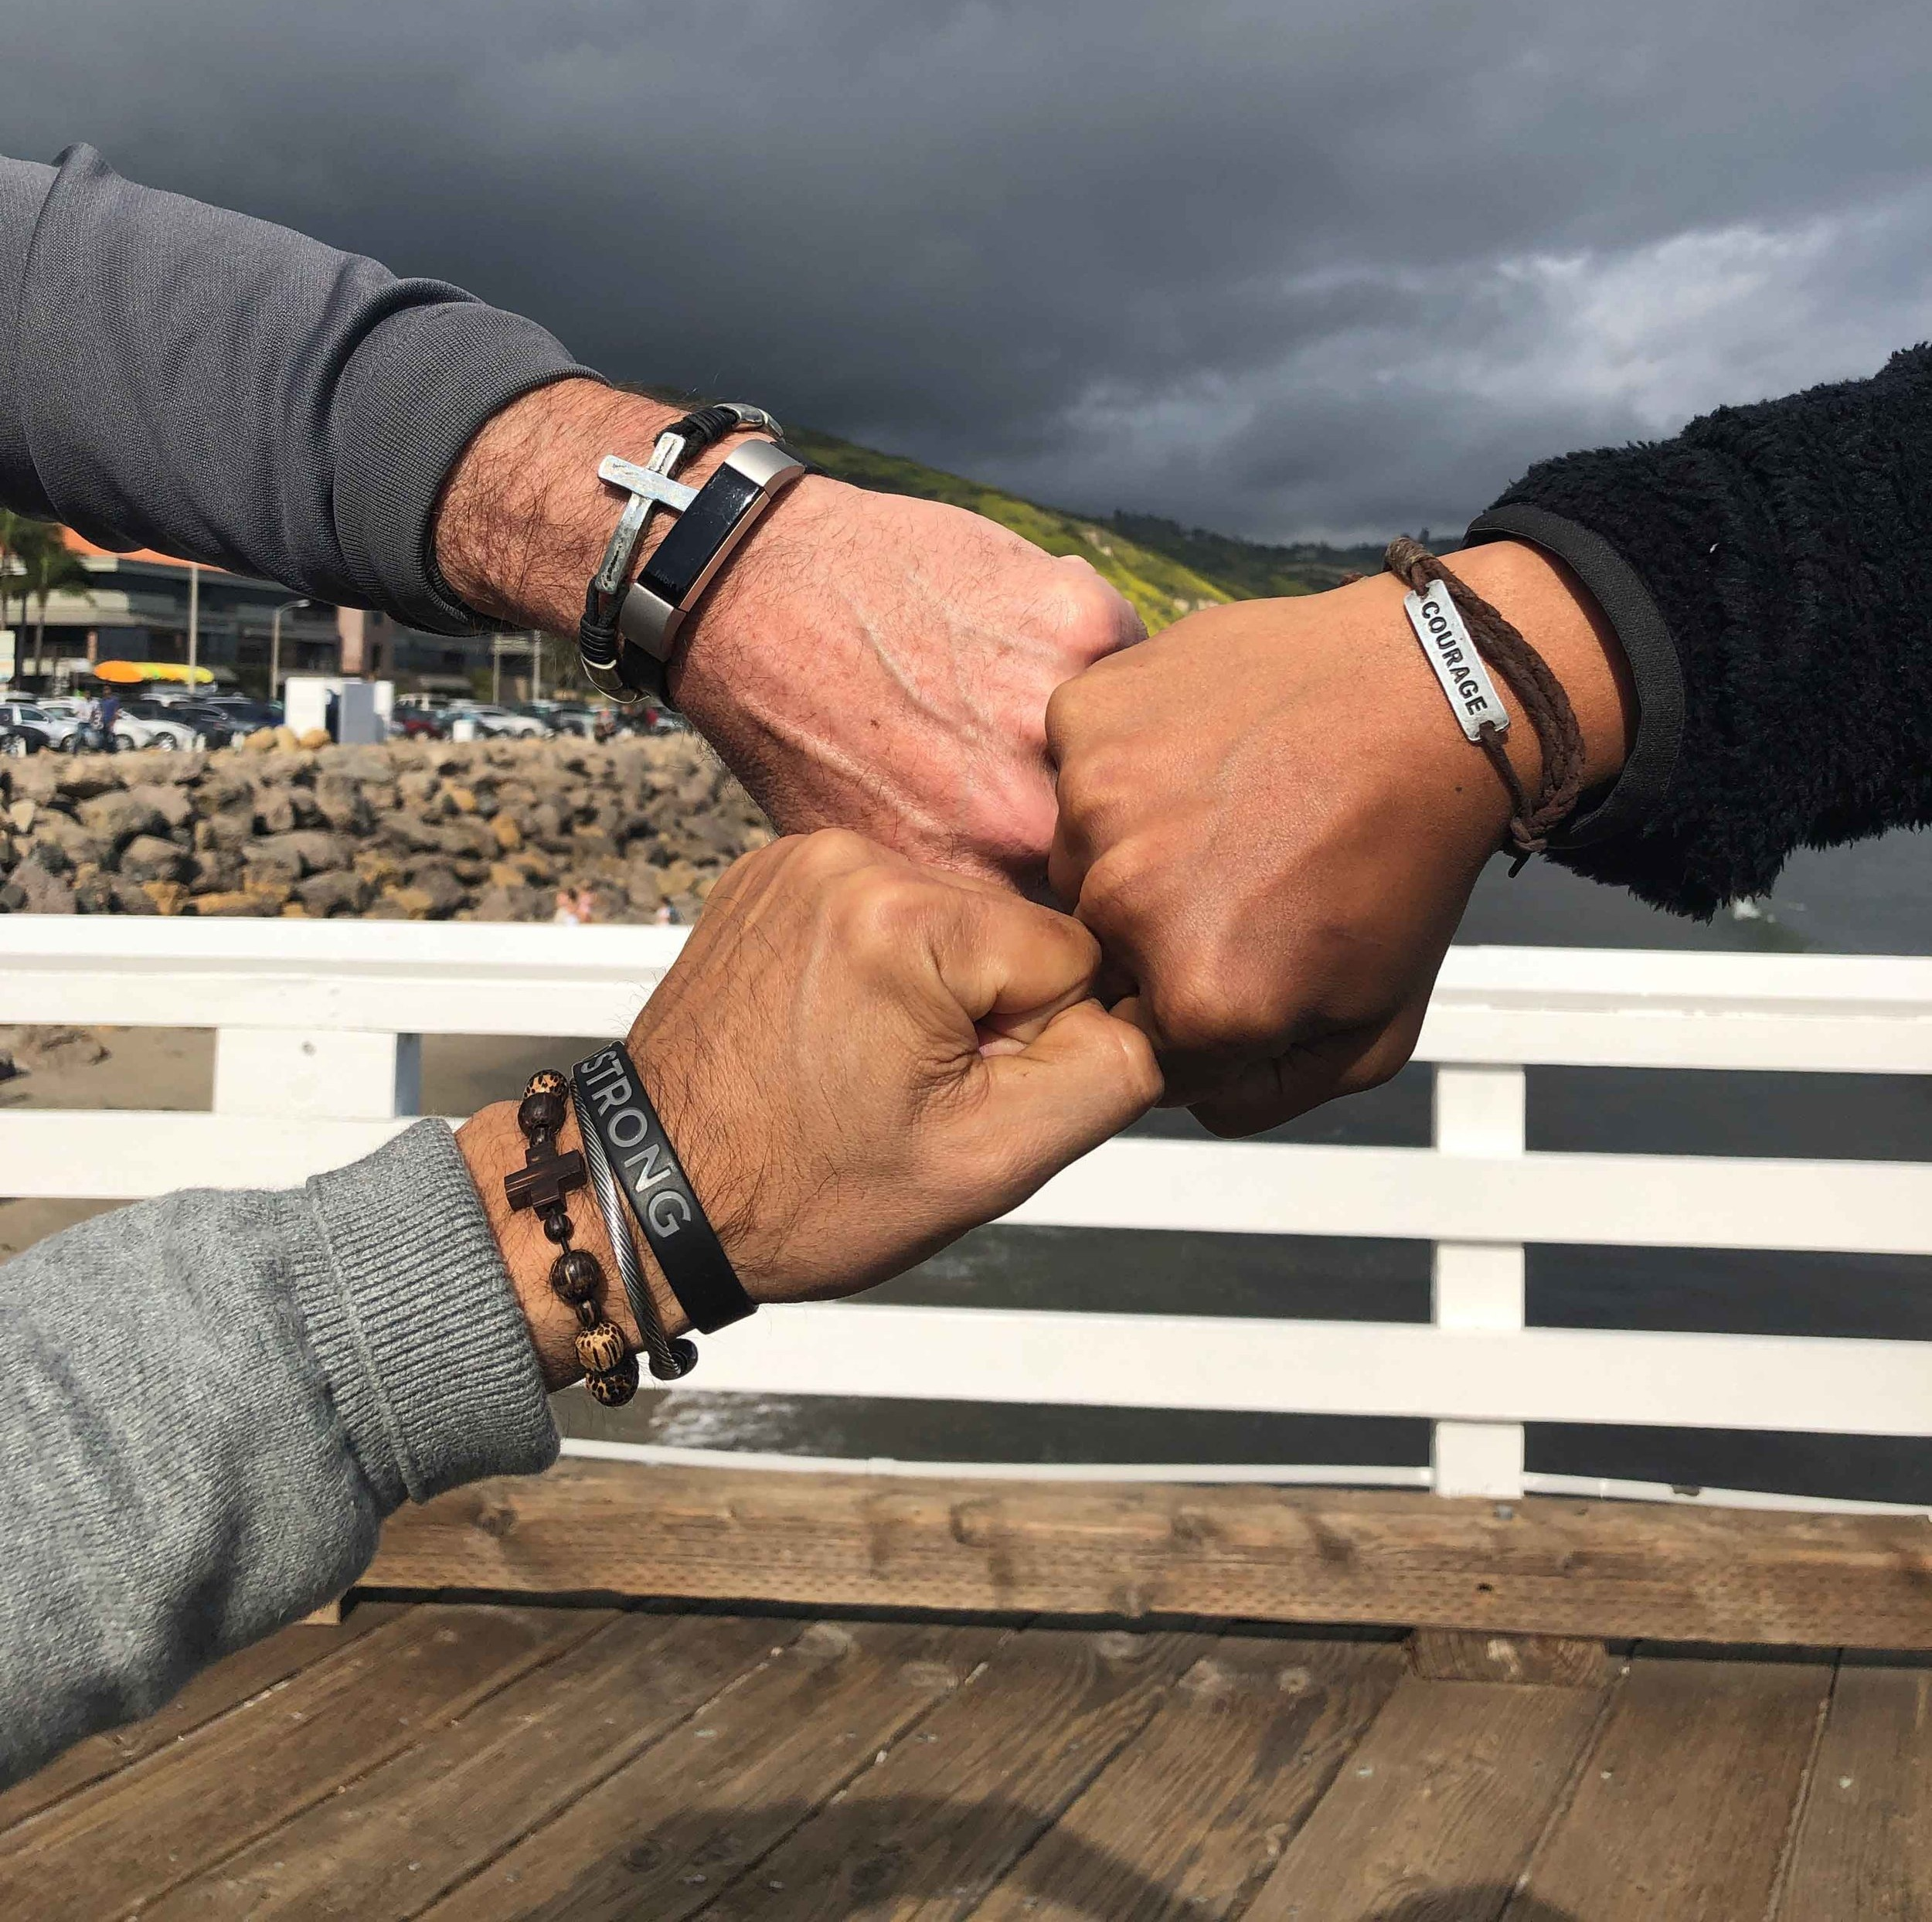 Each of these men have one of Craig's bracelets that they wear as a reminder of their friendship and how it is important not to be isolated but to live in community.